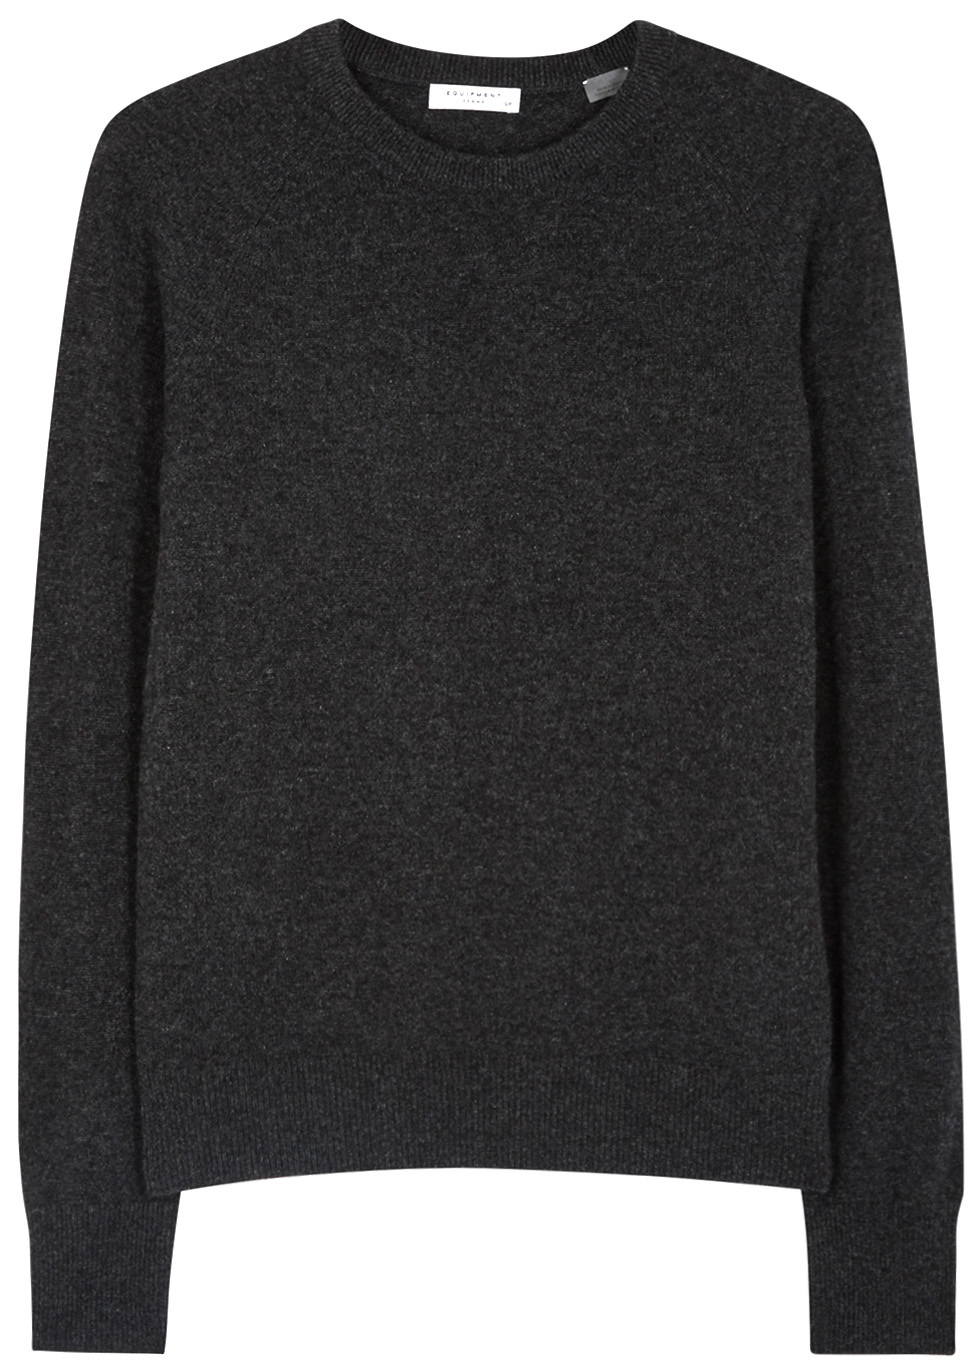 Sloane Charcoal Cashmere Jumper - neckline: round neck; pattern: plain; style: standard; predominant colour: charcoal; occasions: casual, work, creative work; length: standard; fit: standard fit; fibres: cashmere - 100%; sleeve length: long sleeve; sleeve style: standard; texture group: knits/crochet; pattern type: knitted - fine stitch; wardrobe: investment; season: a/w 2016